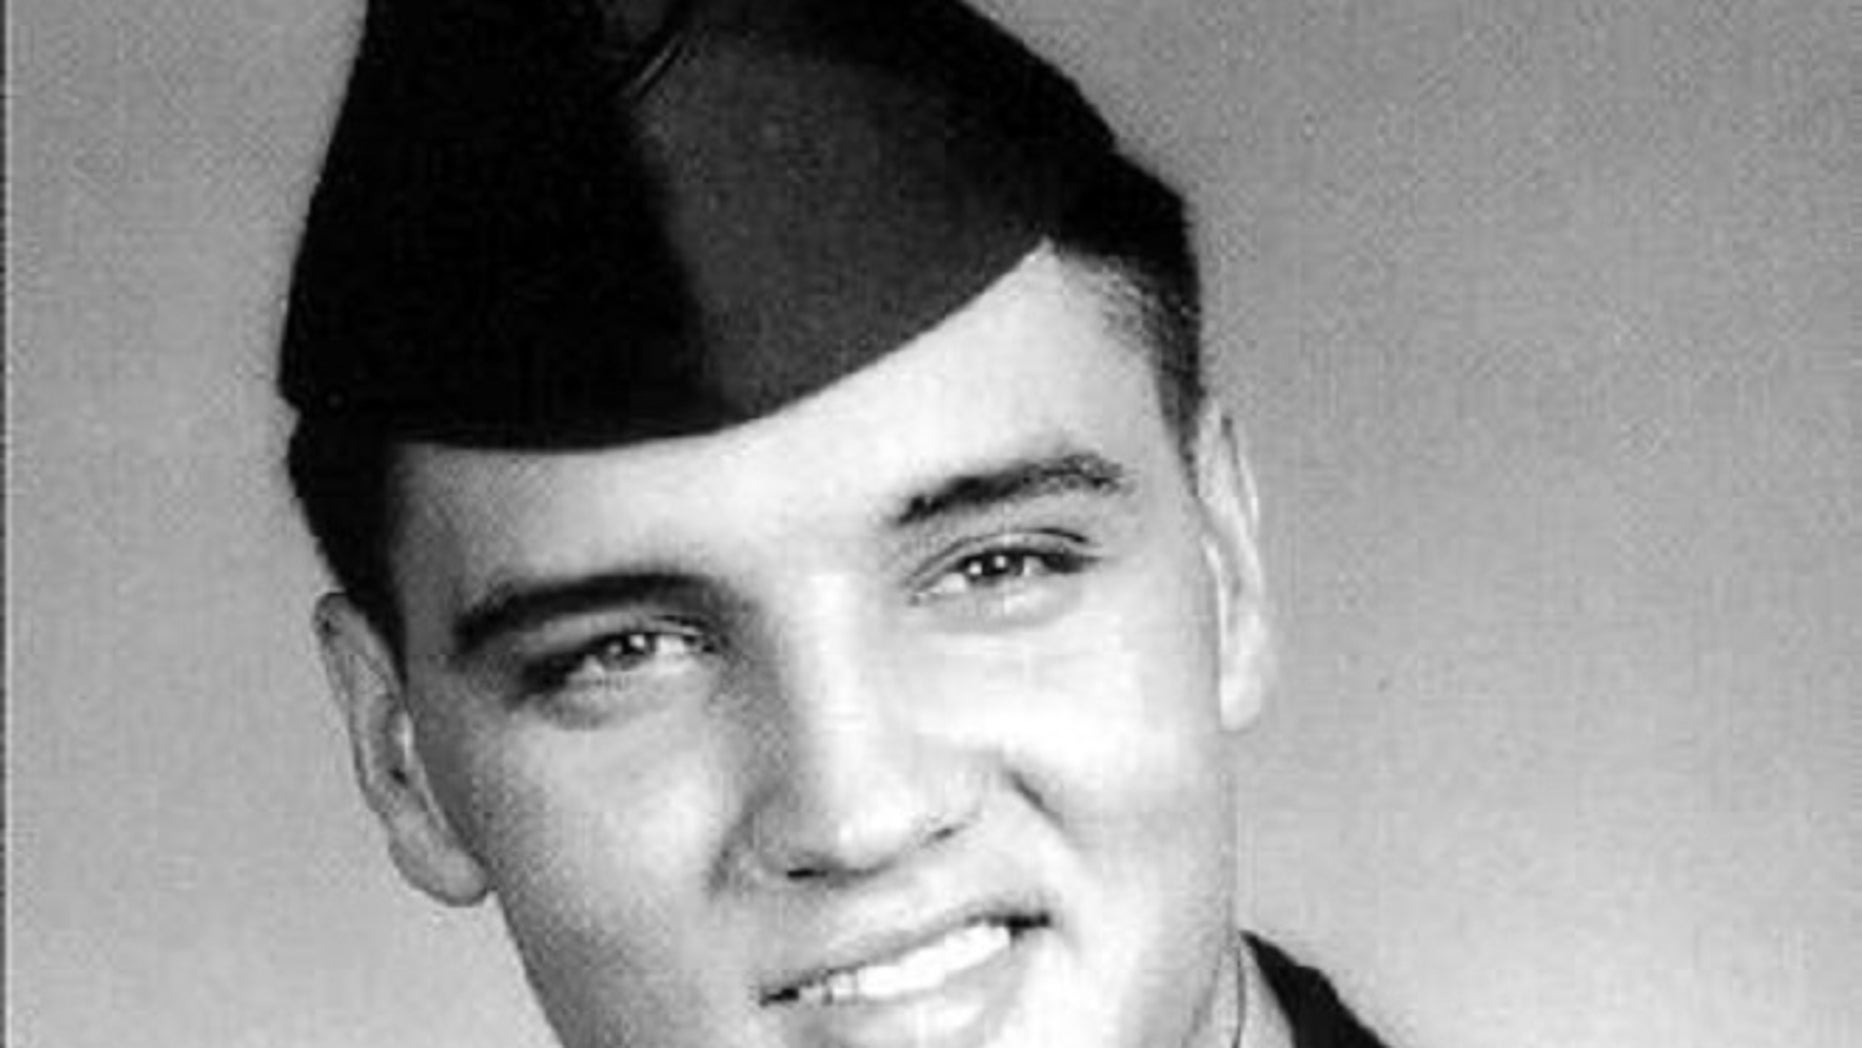 FILE: Elvis Presley entered the United States Army at Memphis, Tennessee, on March 24, 1958.